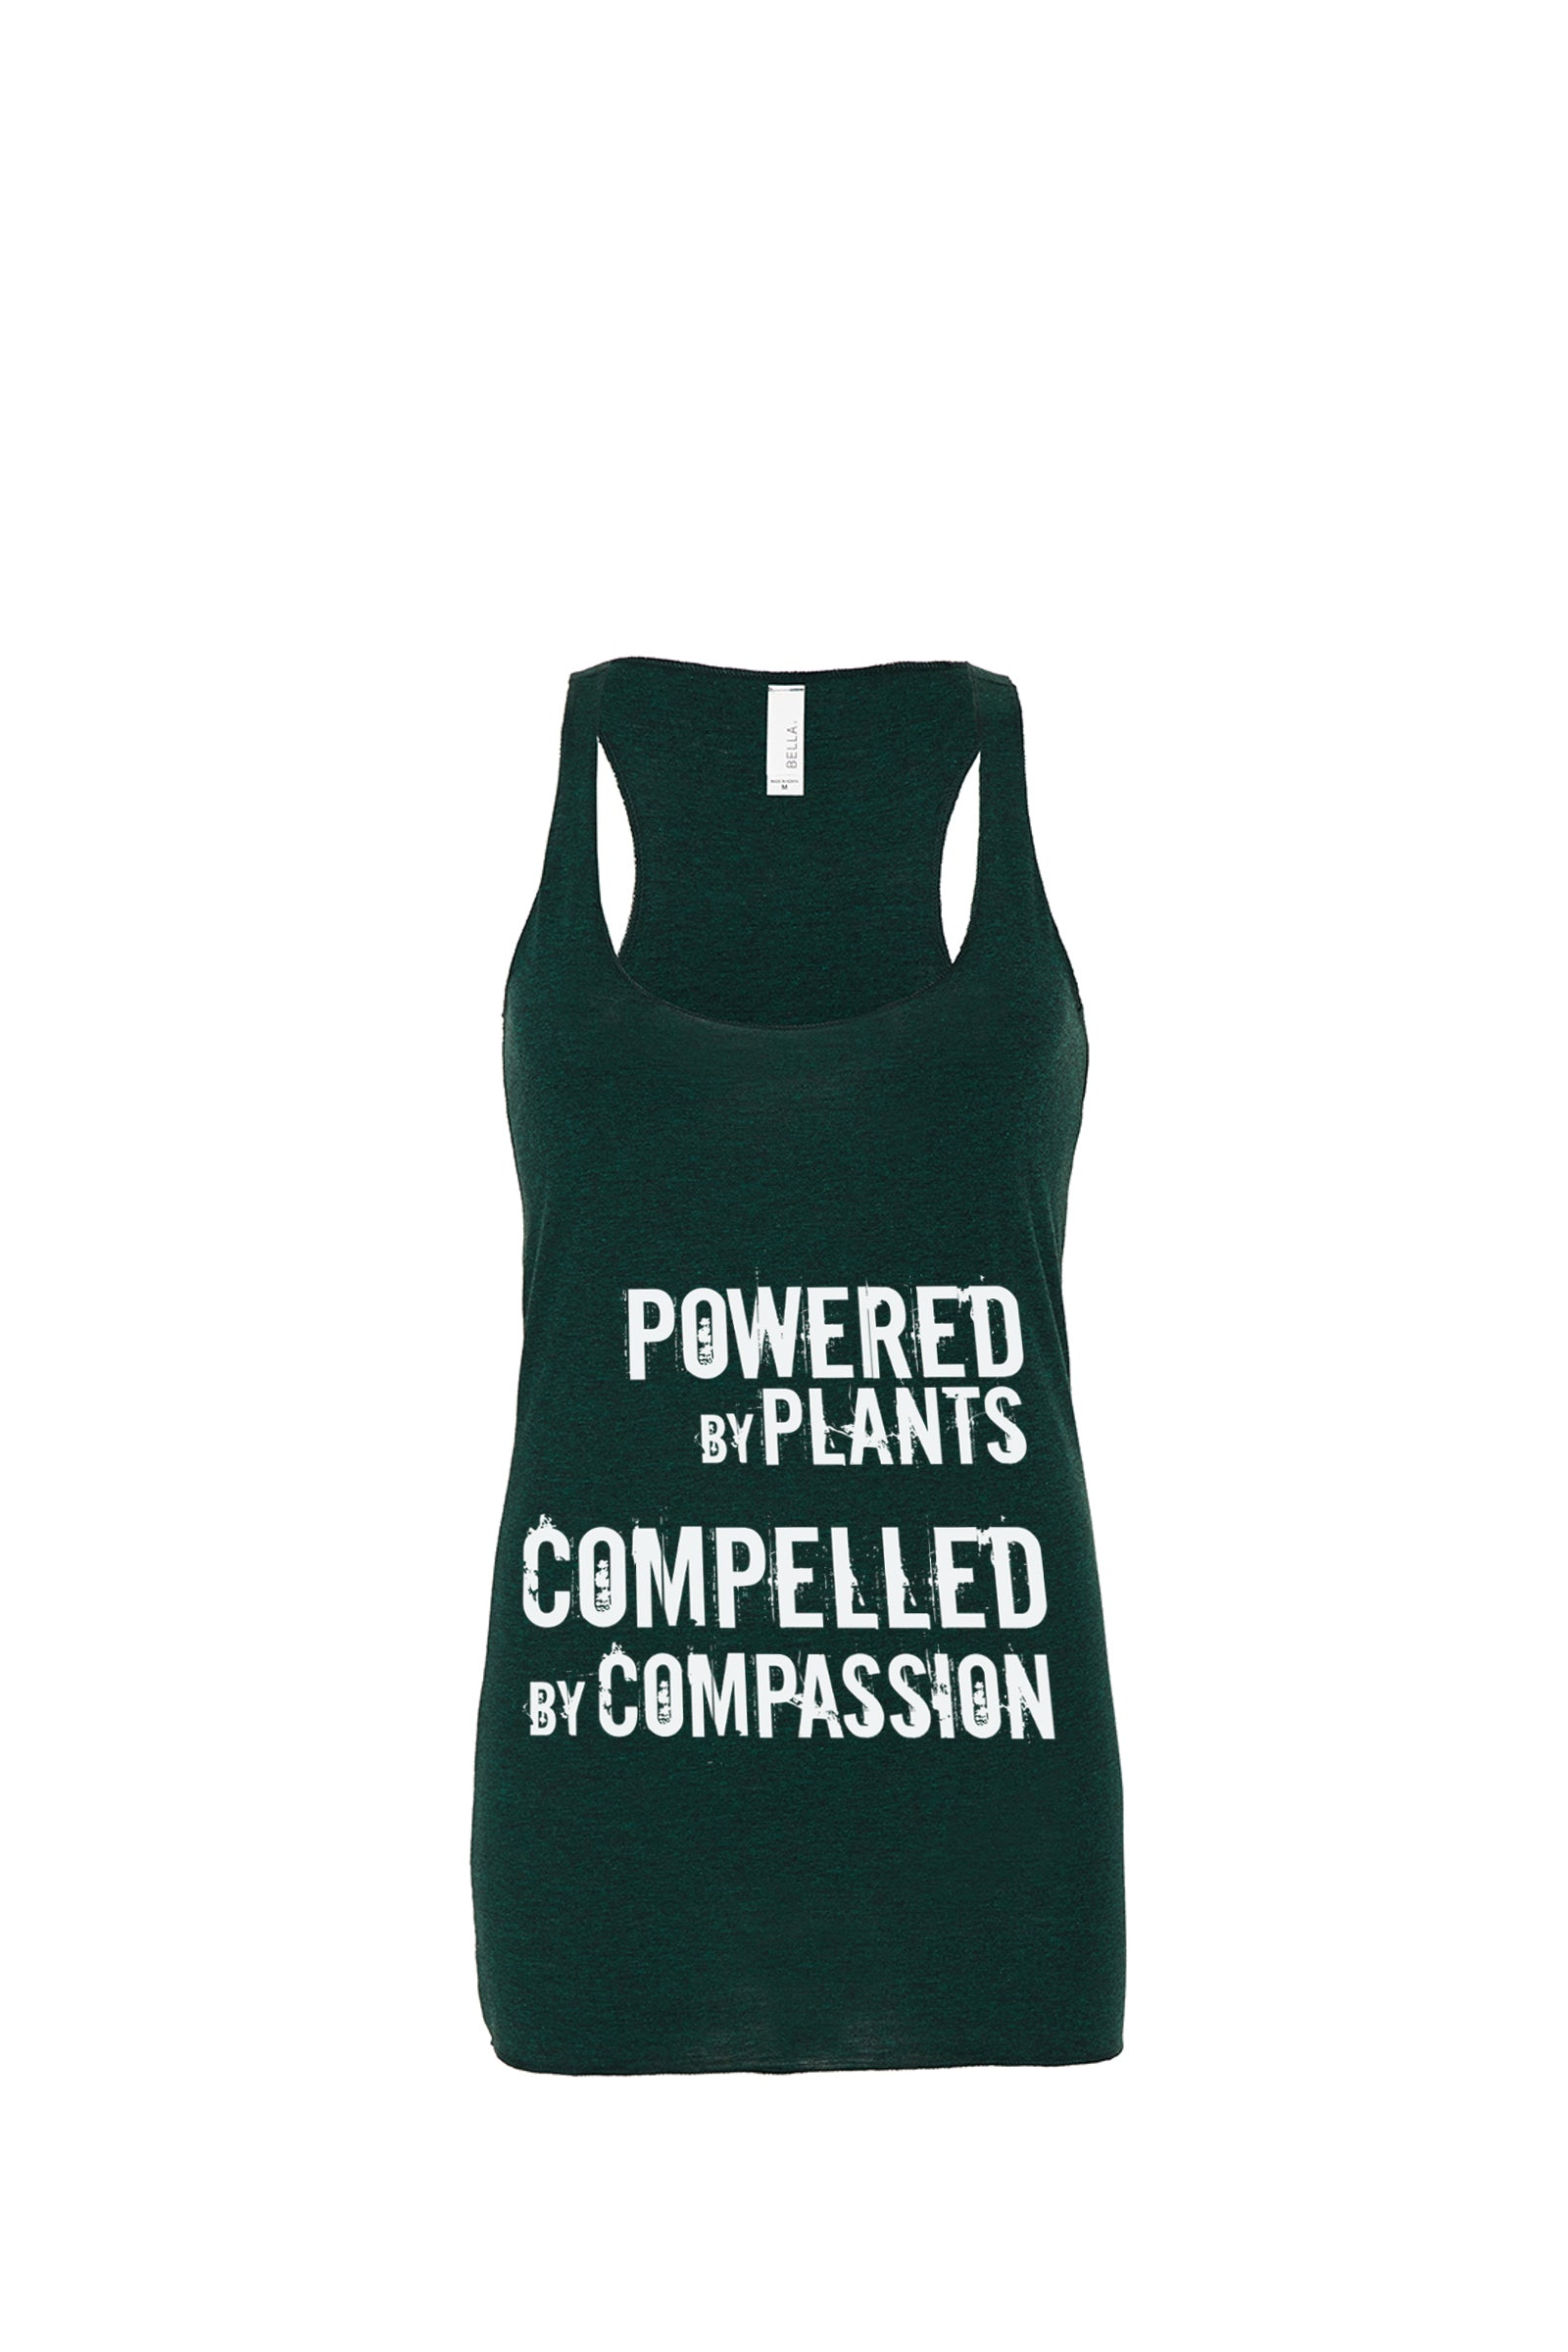 "Women's ""Powered by Plants, Compelled by Compassion"" Racerback (rough),Humane Apparel  - Humane Apparel"